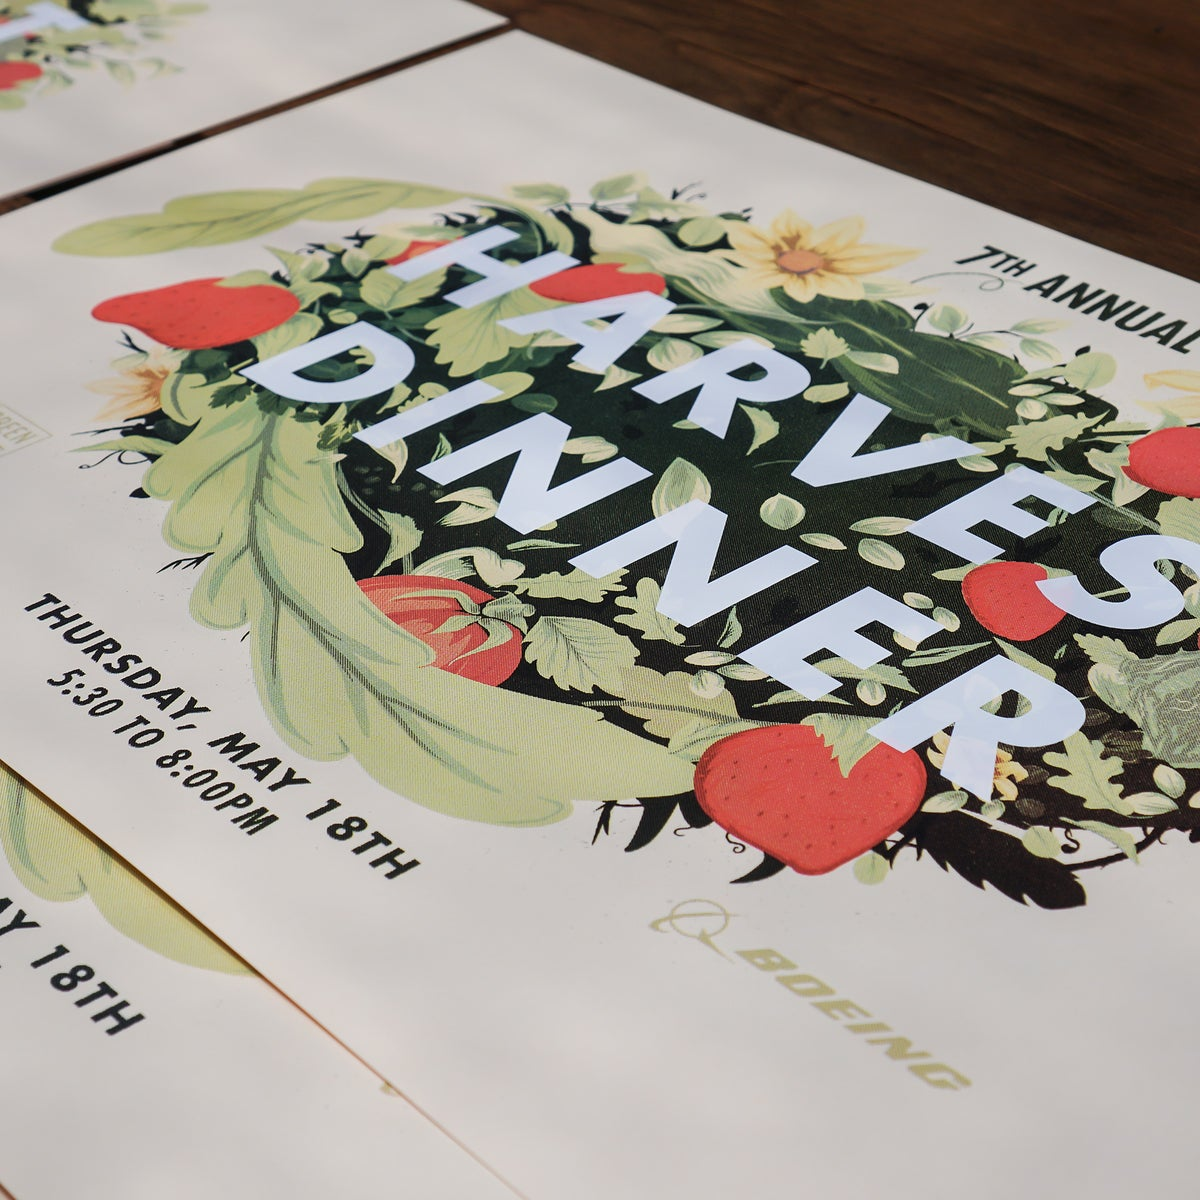 Image of 7th annual Harvest Dinner Screen Print poster